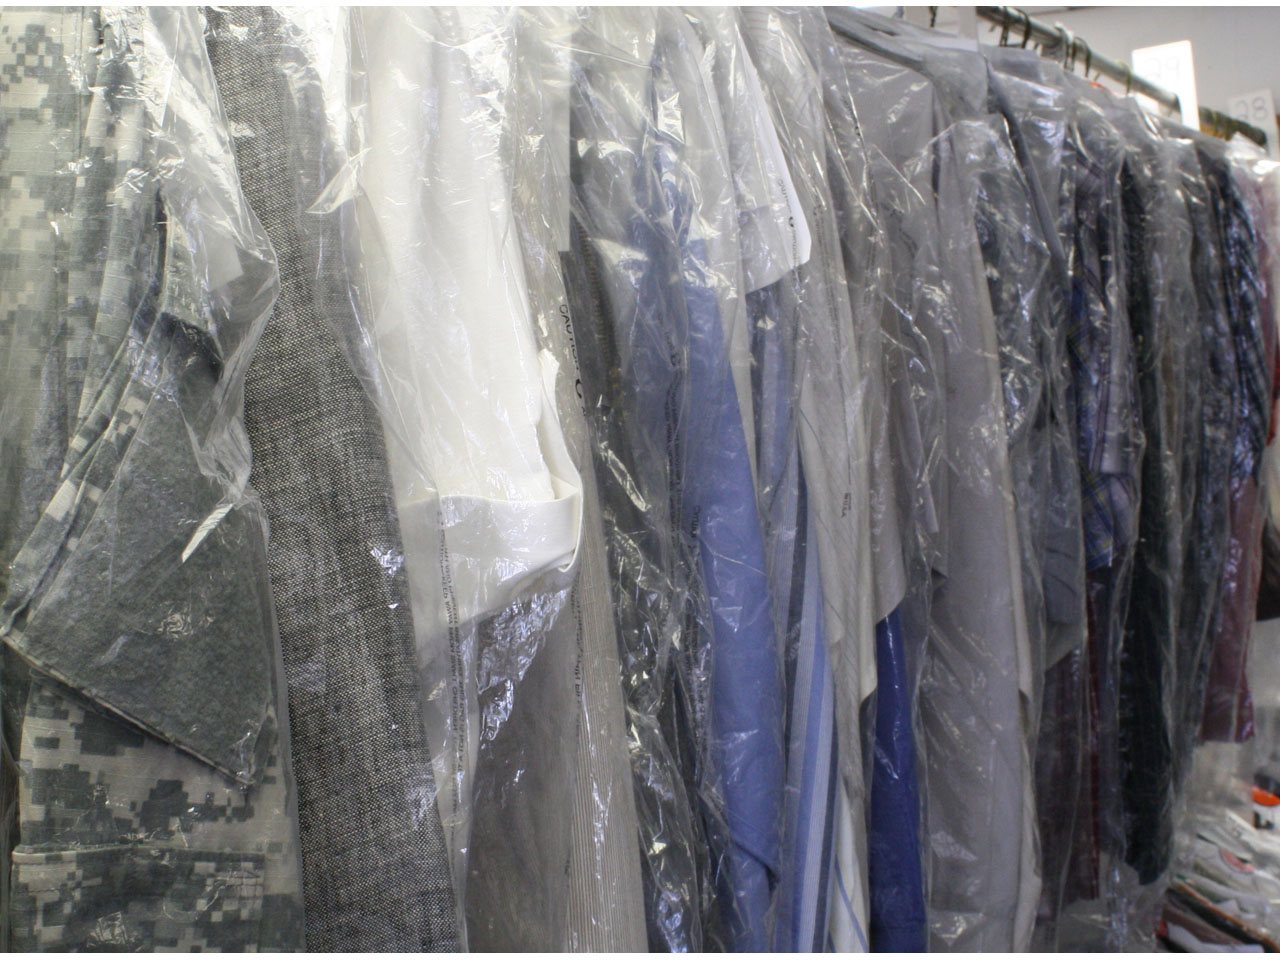 DRY-CLEANING NOVITET Dry-cleaning Beograd